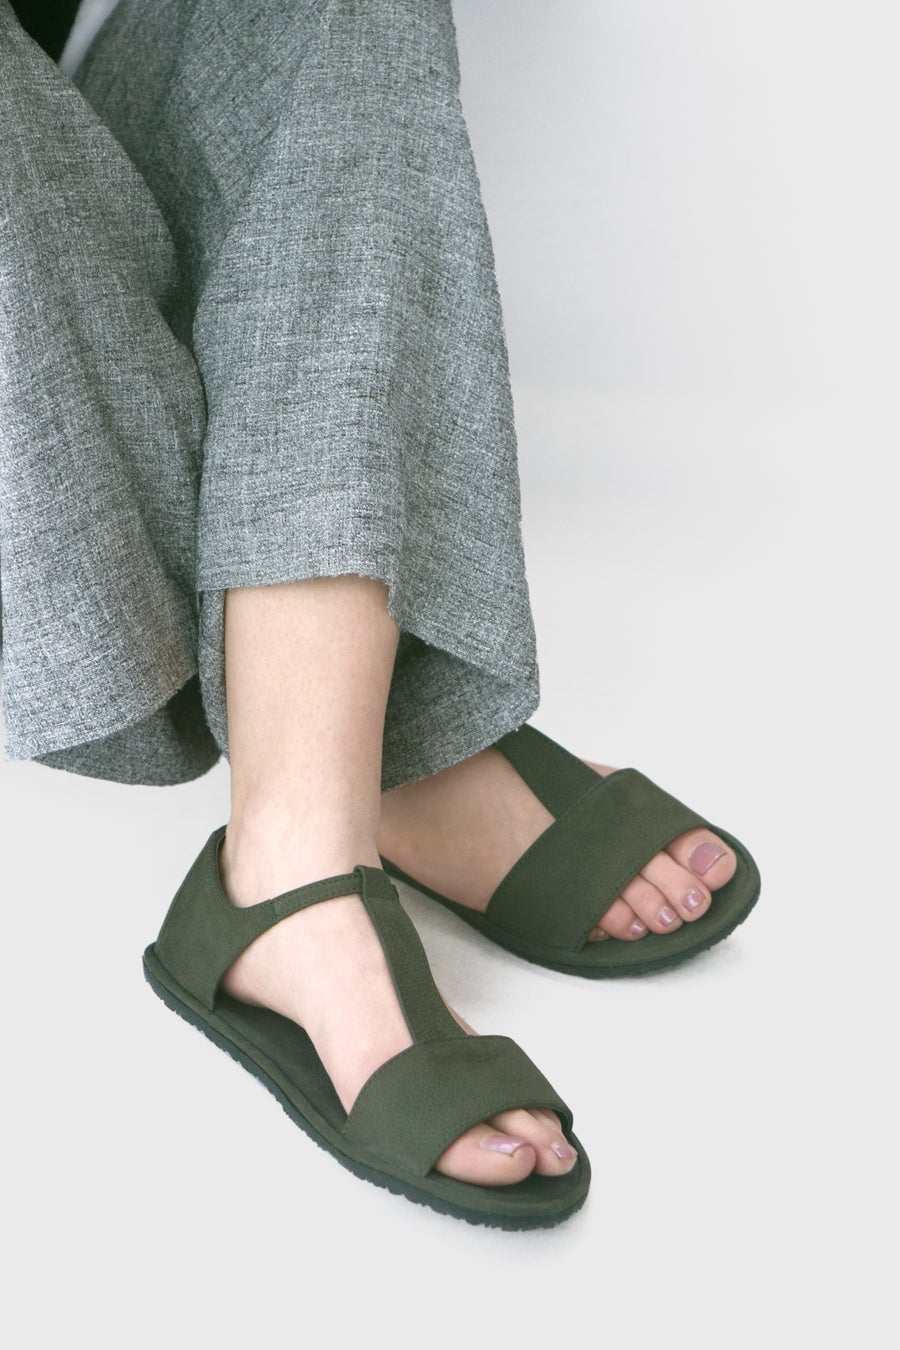 Image of T-strap Sandals in Olive Nubuck